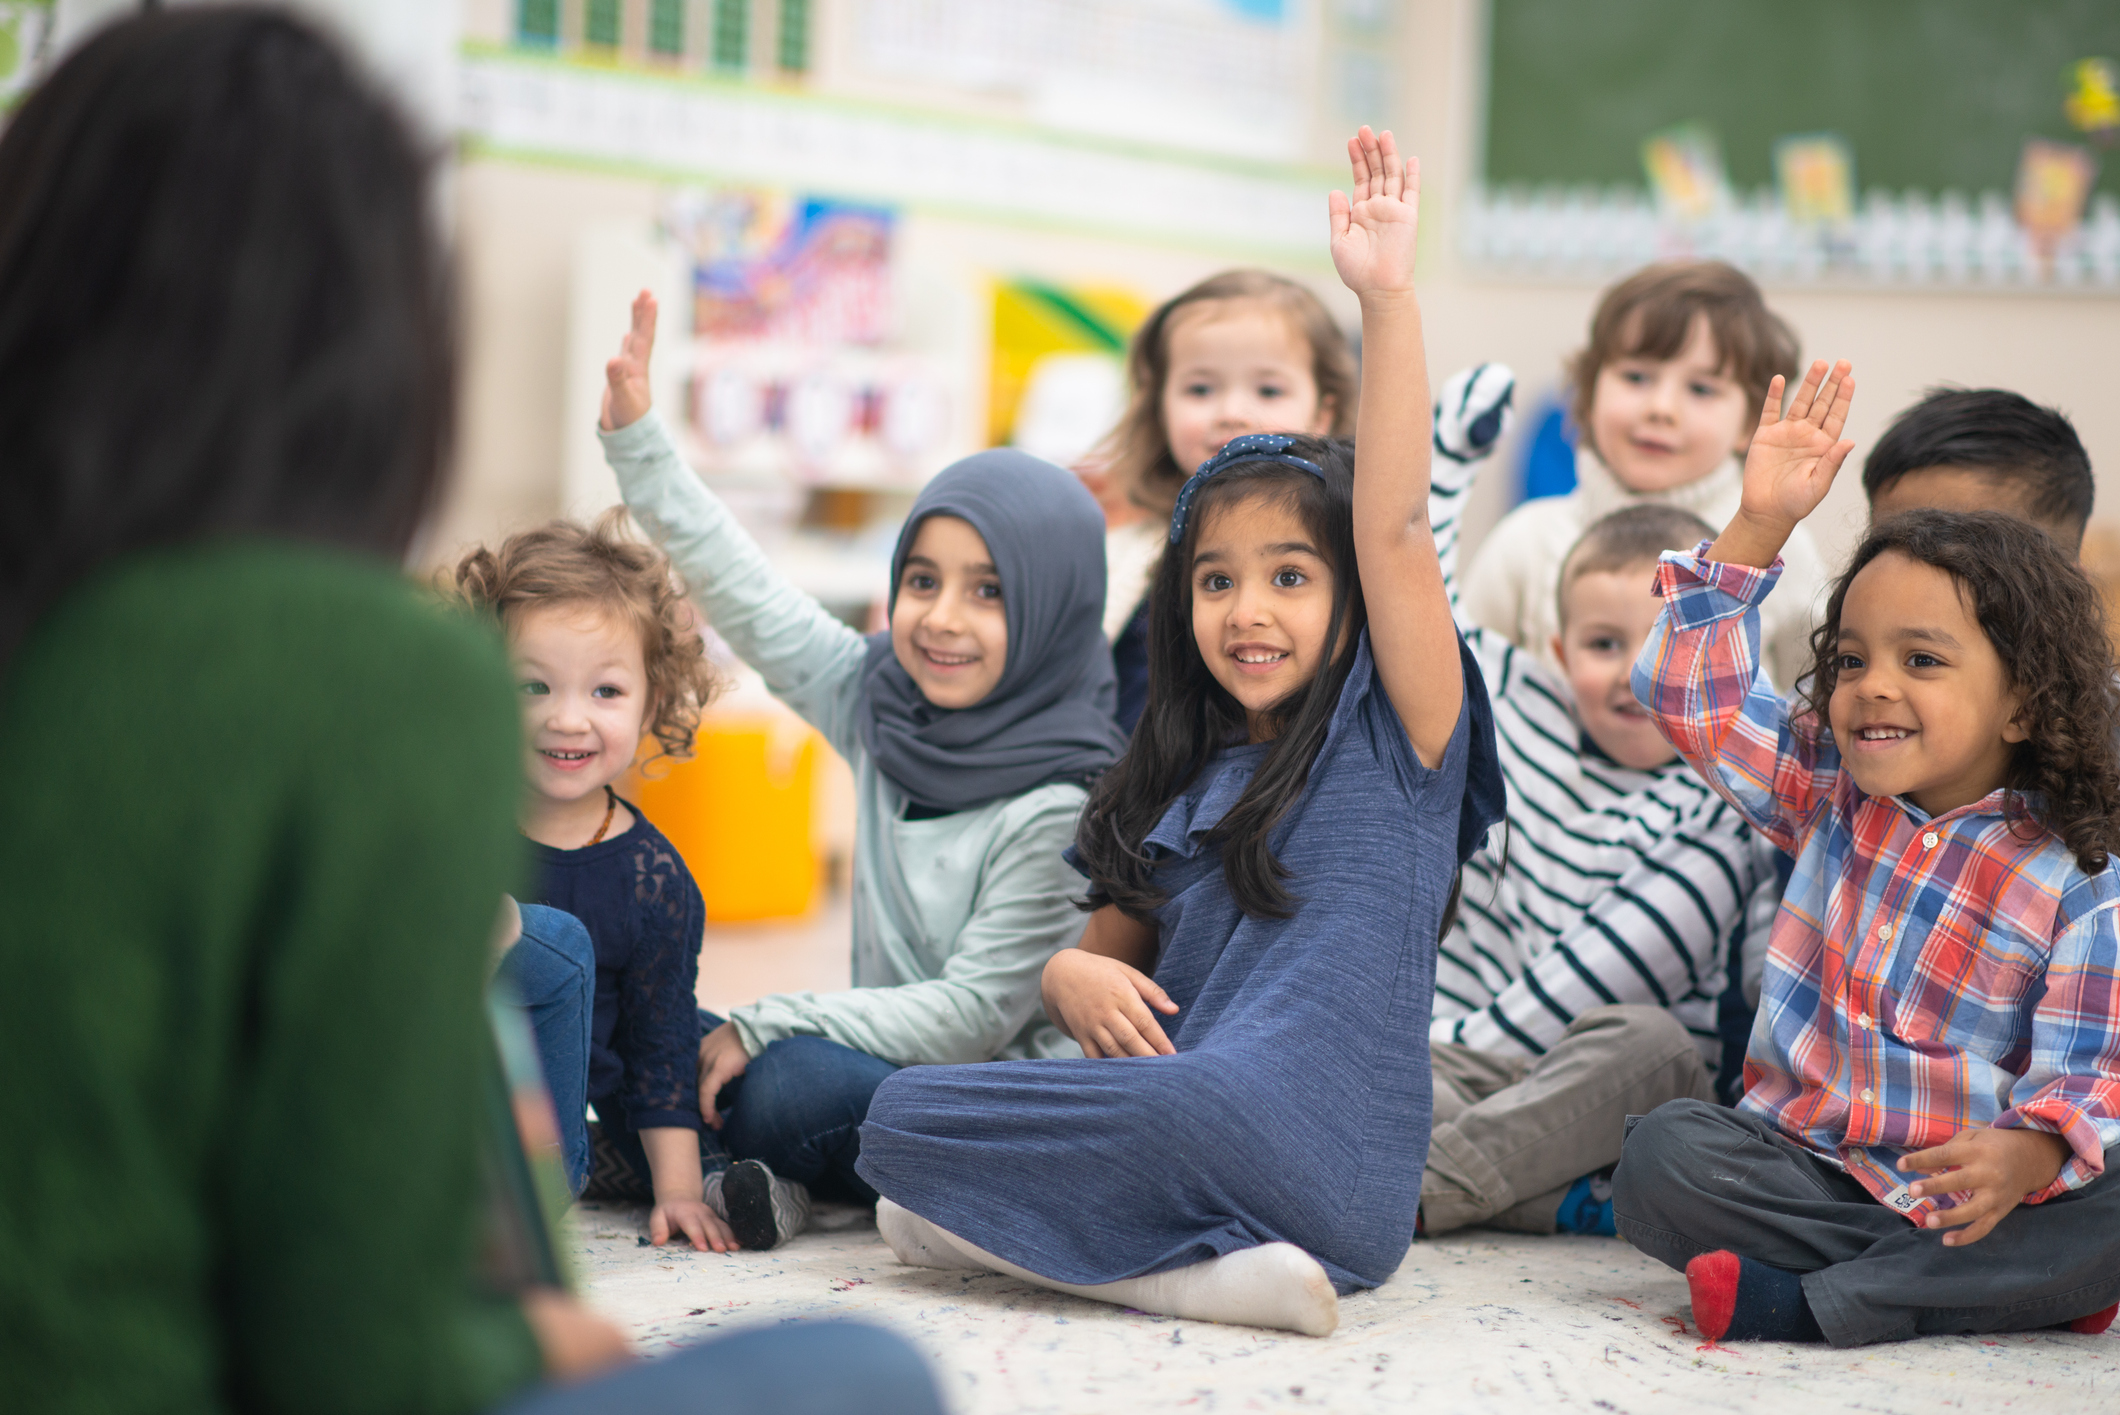 Muslim children are stigmatised by the government's Prevent strategy